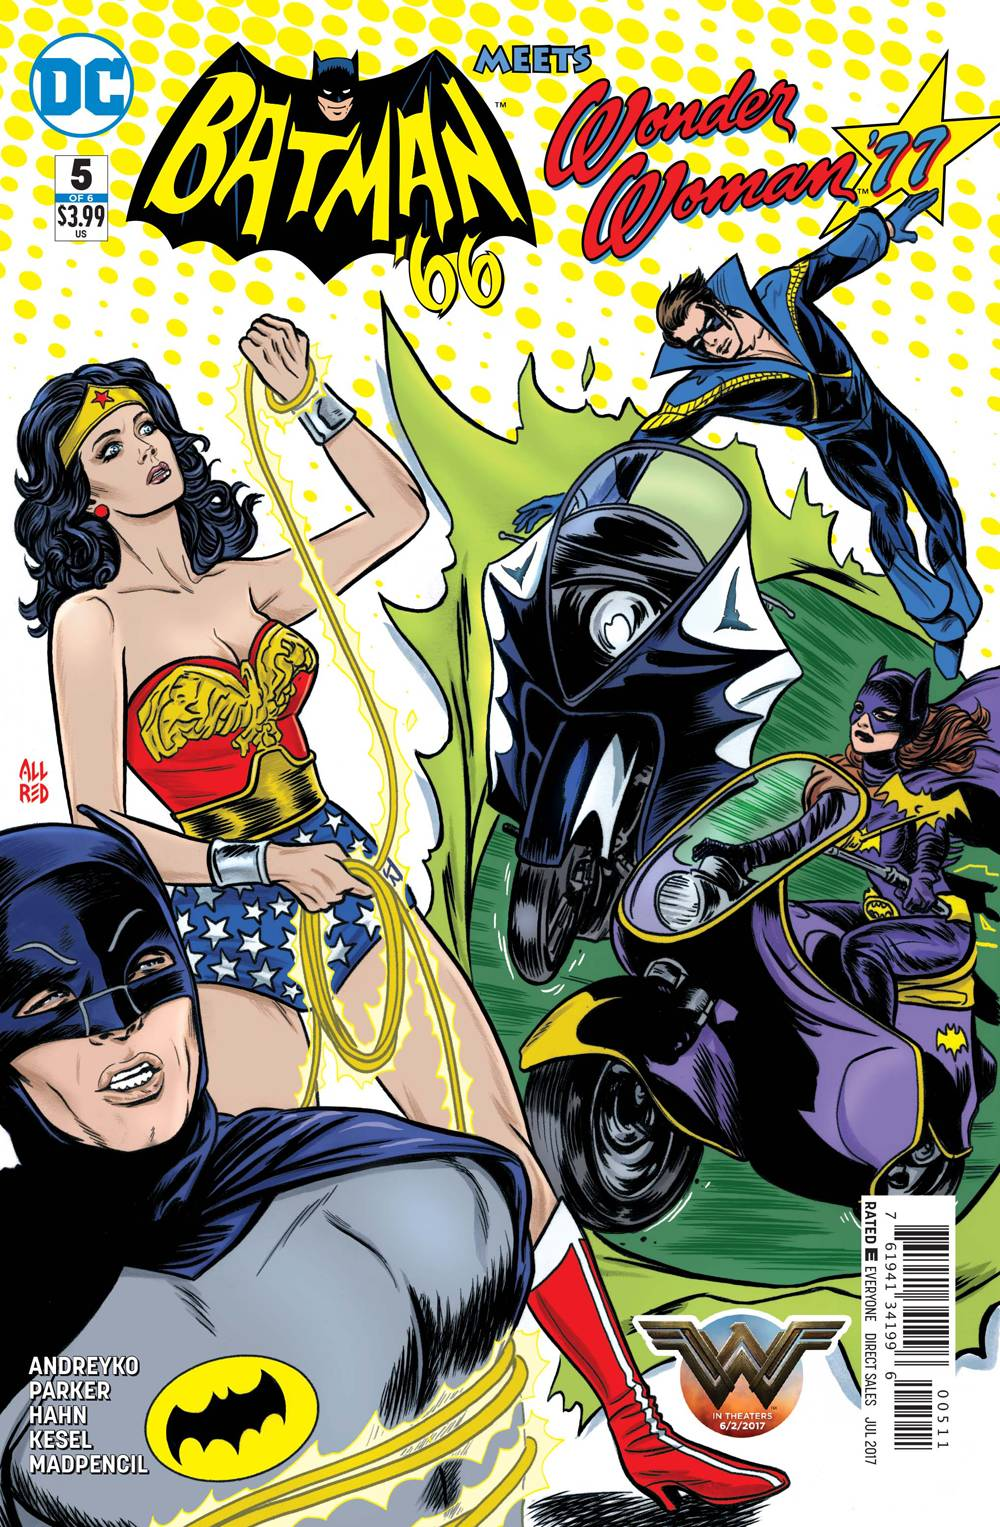 BATMAN 66 MEETS WONDER WOMAN 77 5 of 6.jpg